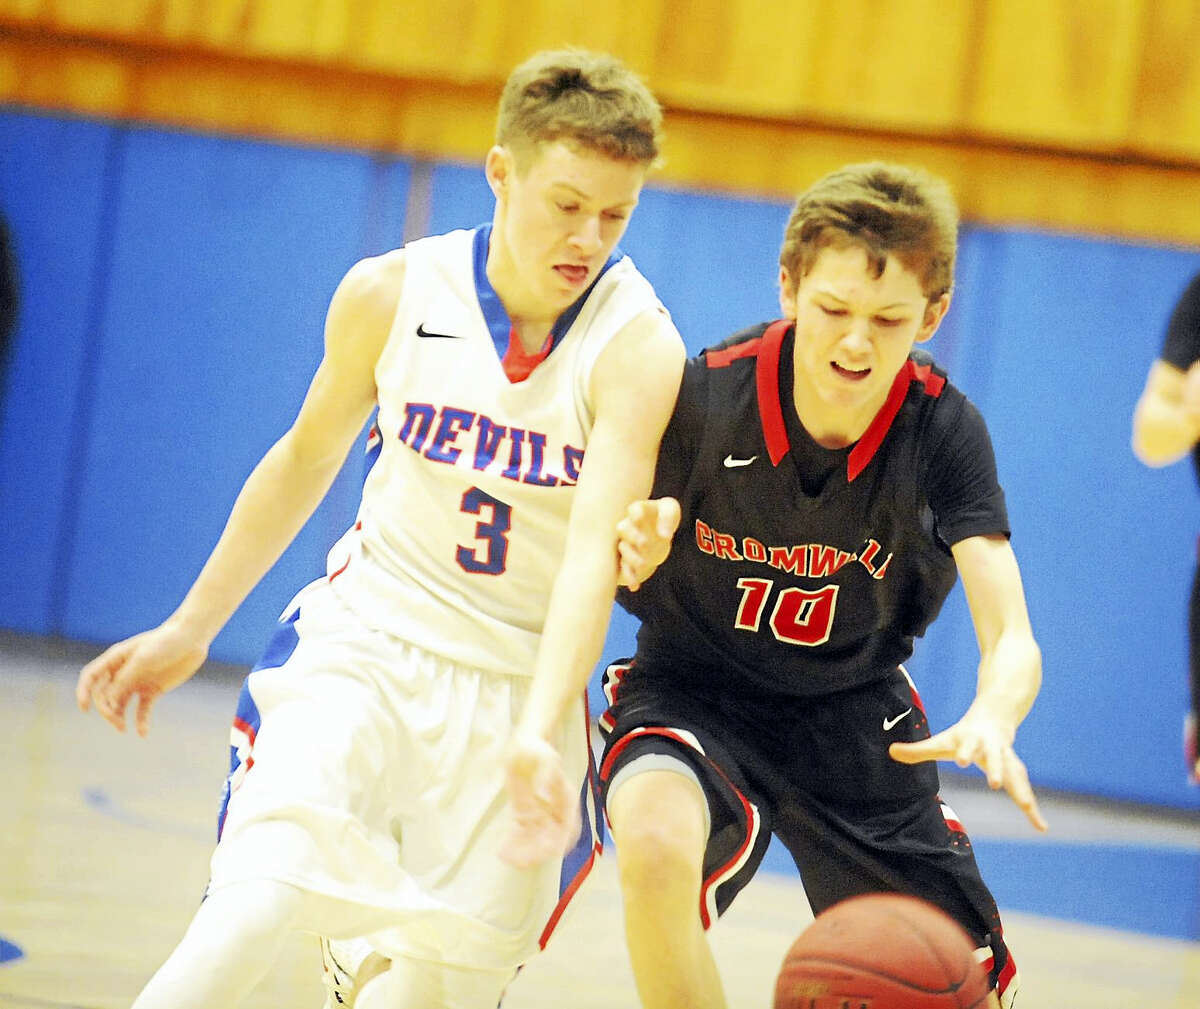 Coginchaug's Ryan Cross, left, and Cromwell's Noah Budzik fight for a loose ball in the Blue Devils' 58-45 win Friday.